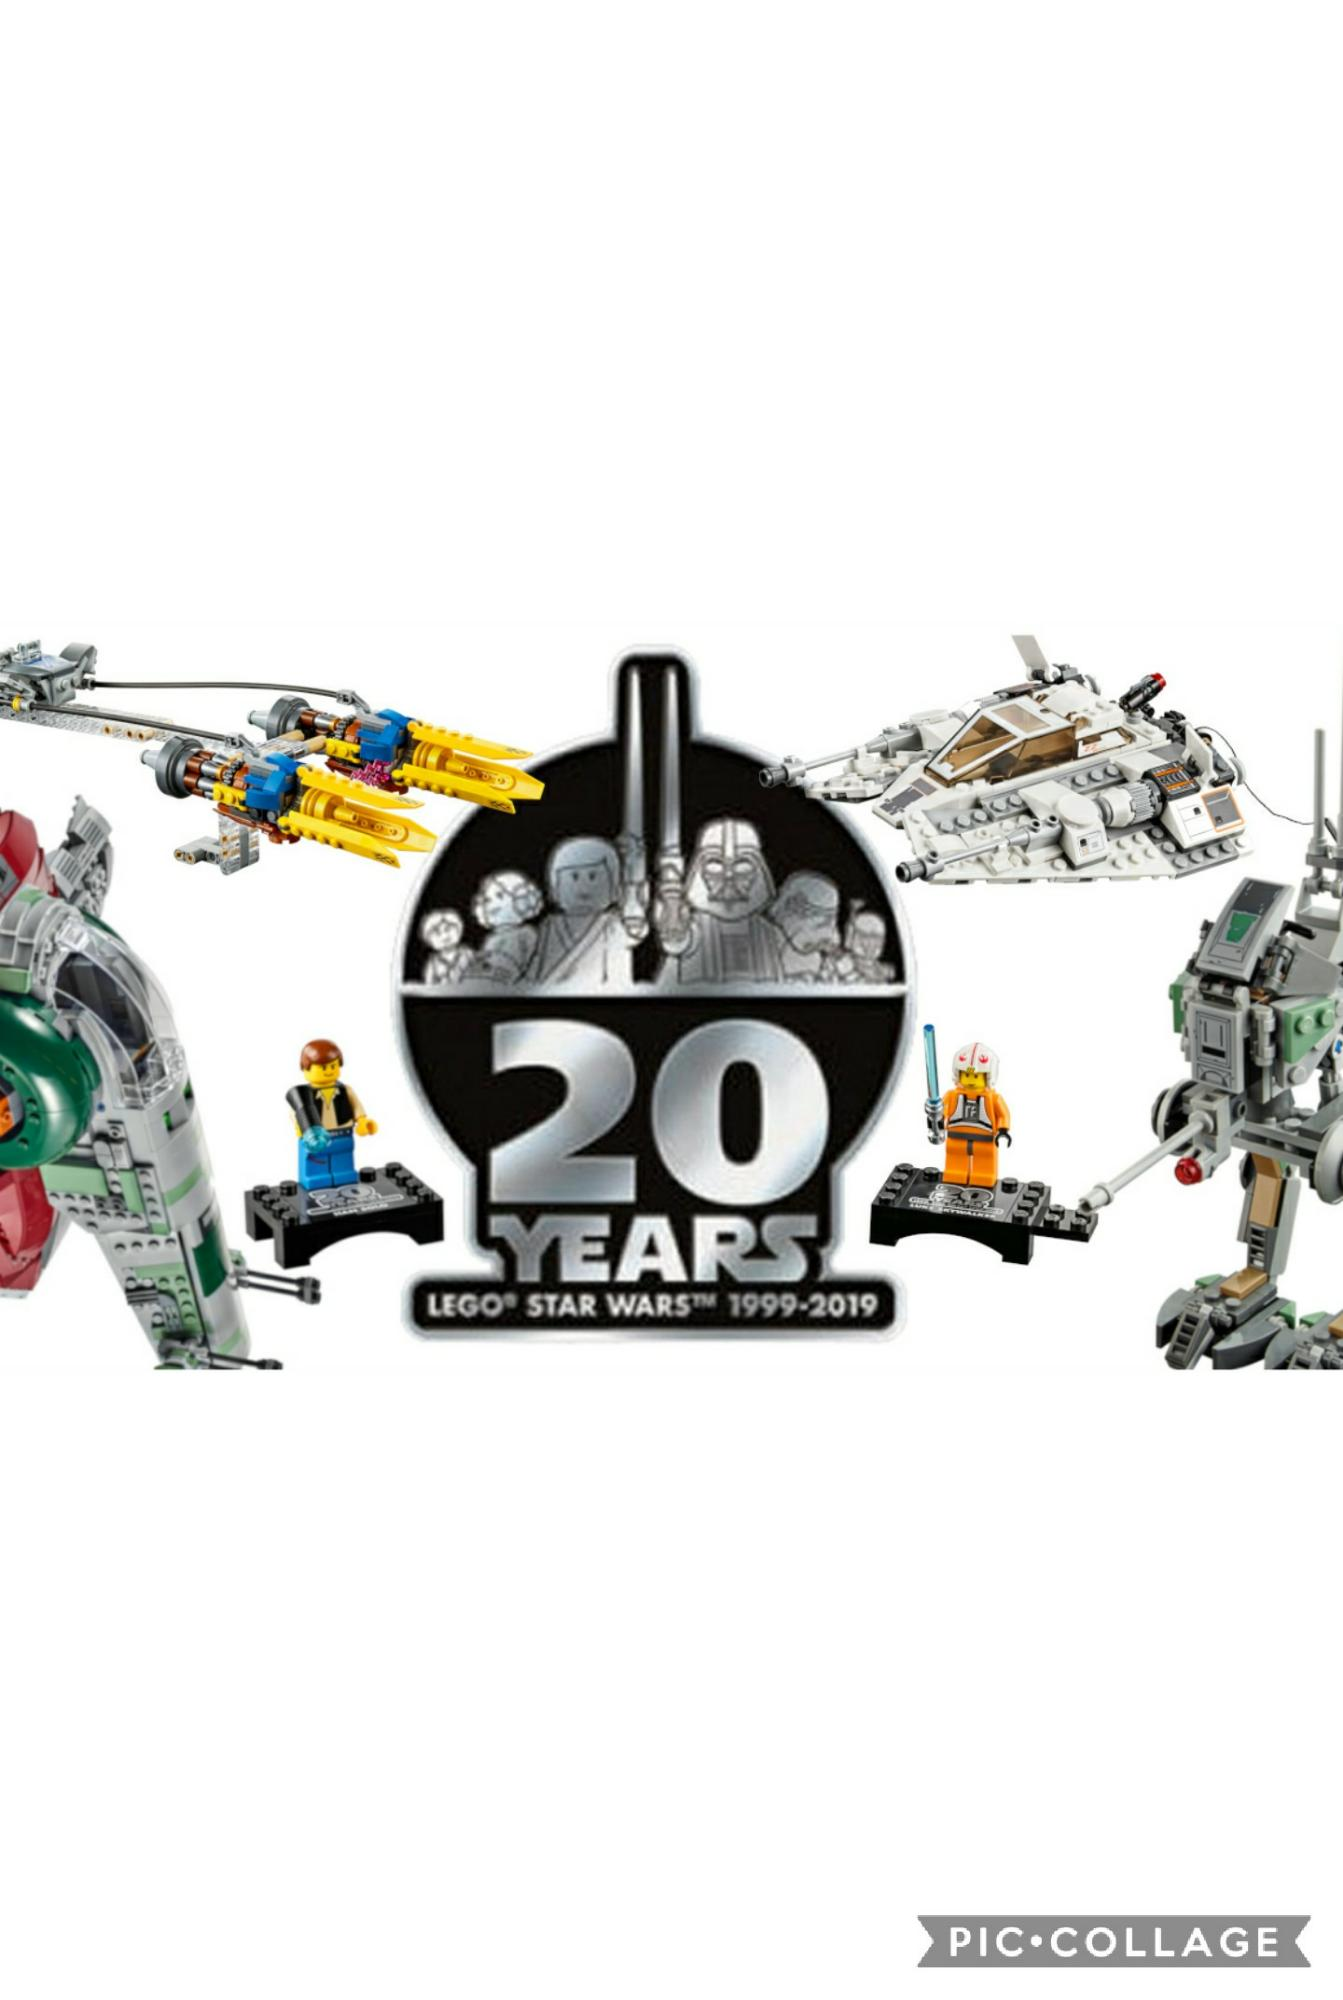 20 Years of LEGO Star Wars LEGO is celebrating by putting Original Style Minfigs in regular SW sets!